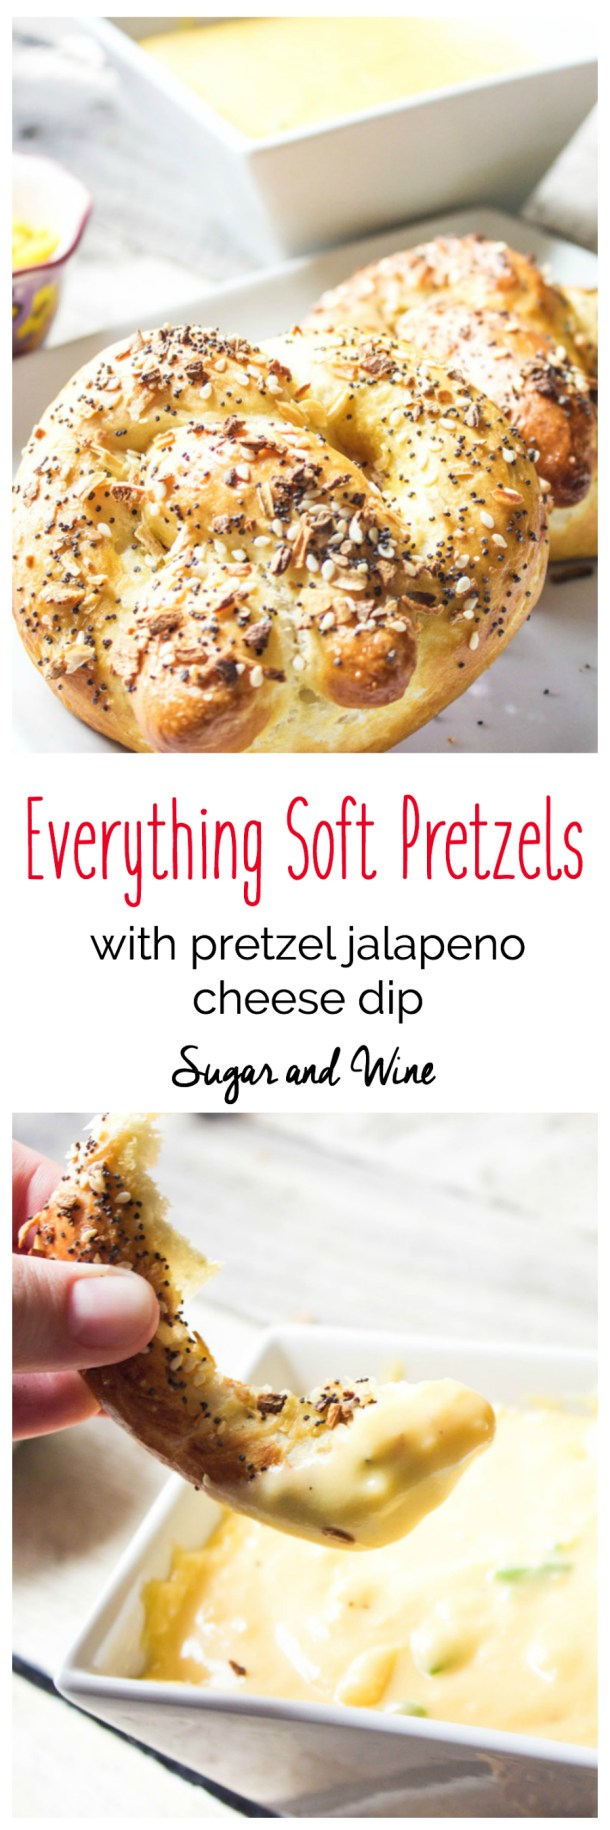 Everything Soft Pretzels | Sugar and Wine